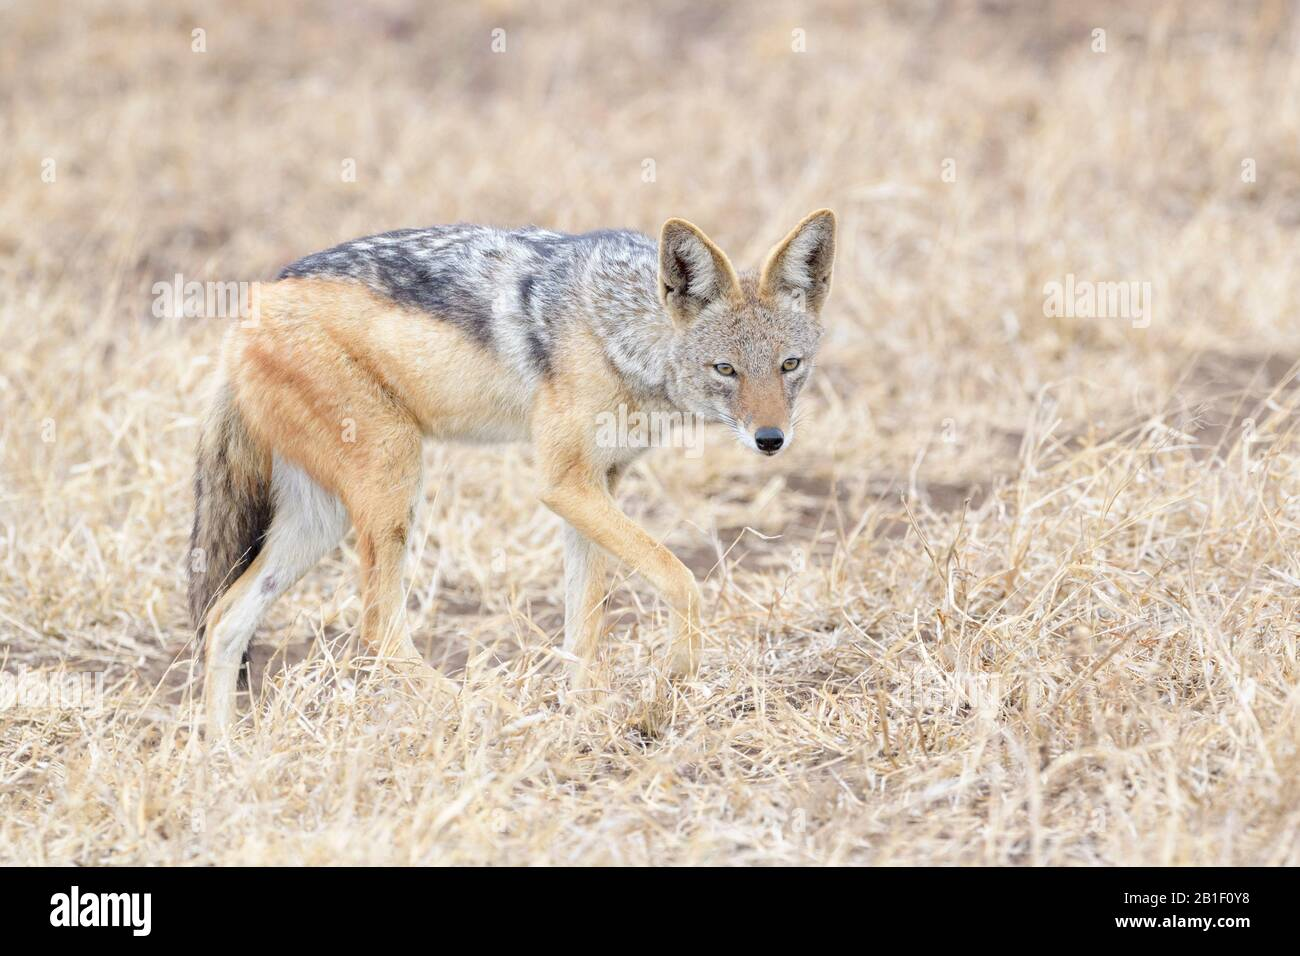 Black-backed Jackal (Canis mesomelas) standing on savanna, looking at camera, Kruger National Park, South Africa. Stock Photo